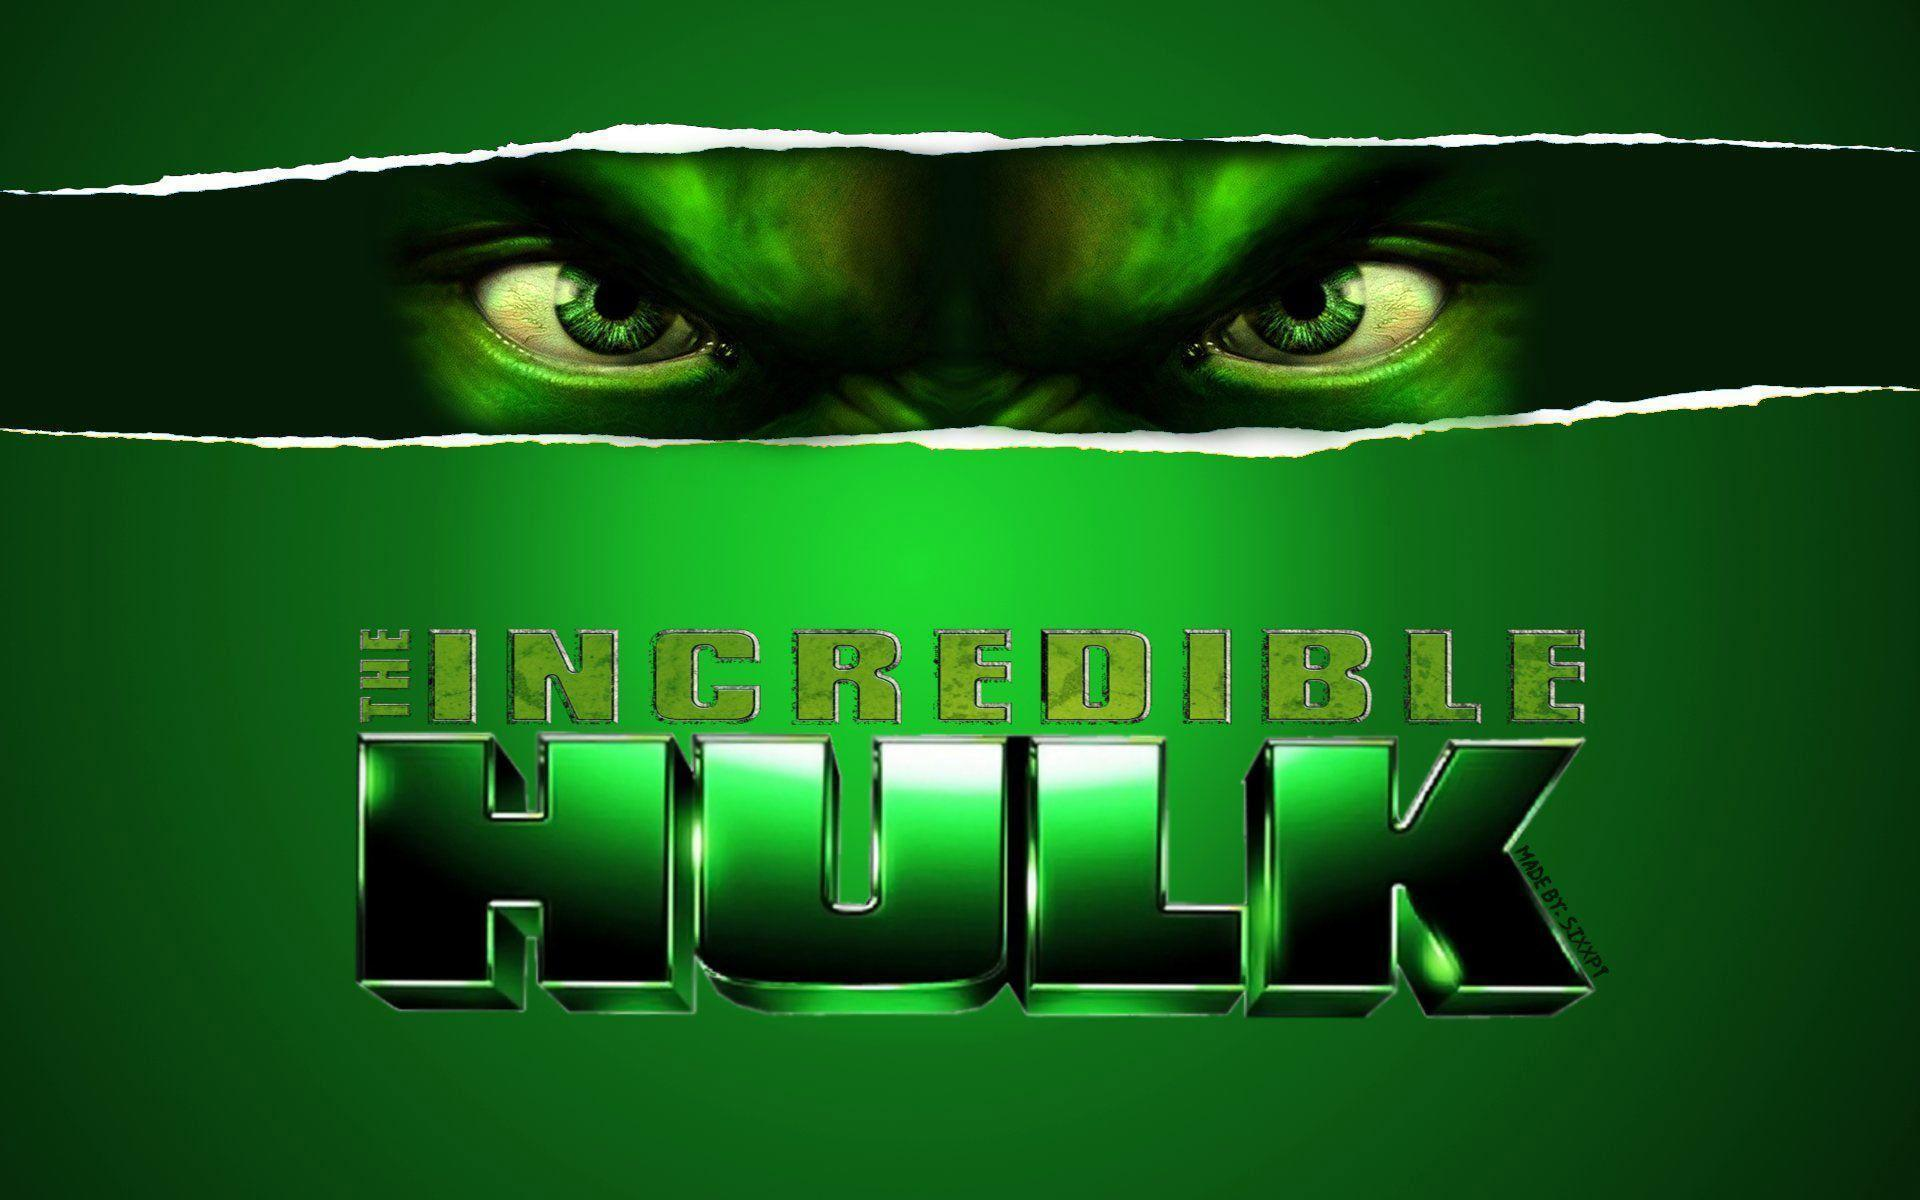 Incredible Hulk Wallpapers - Full HD wallpaper search - page 2